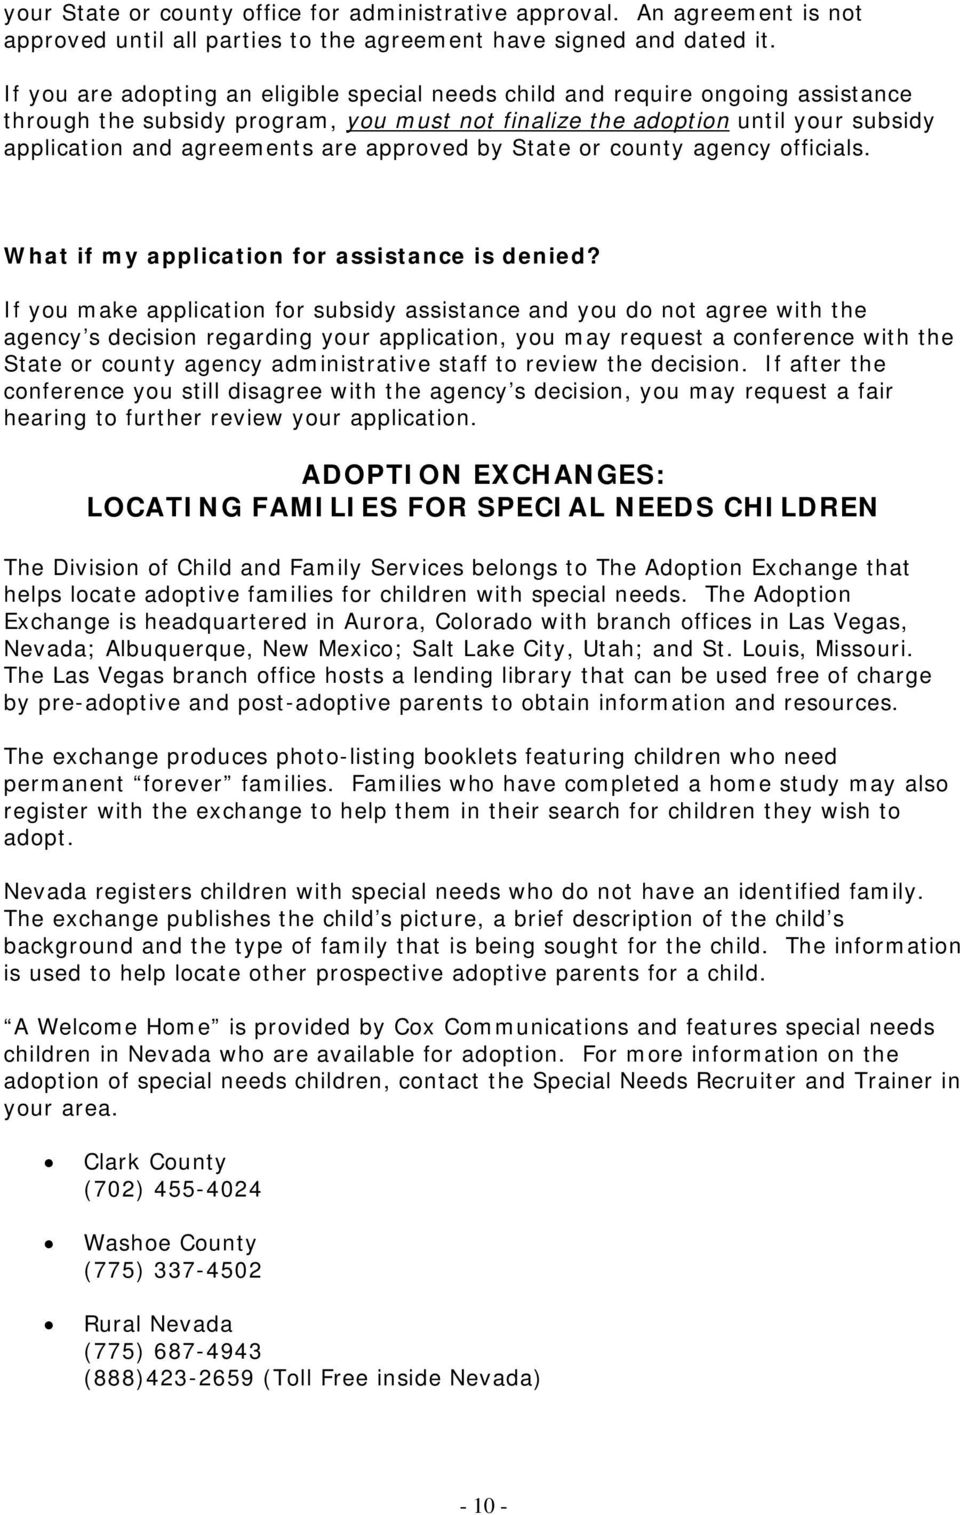 approved by State or county agency officials. What if my application for assistance is denied?